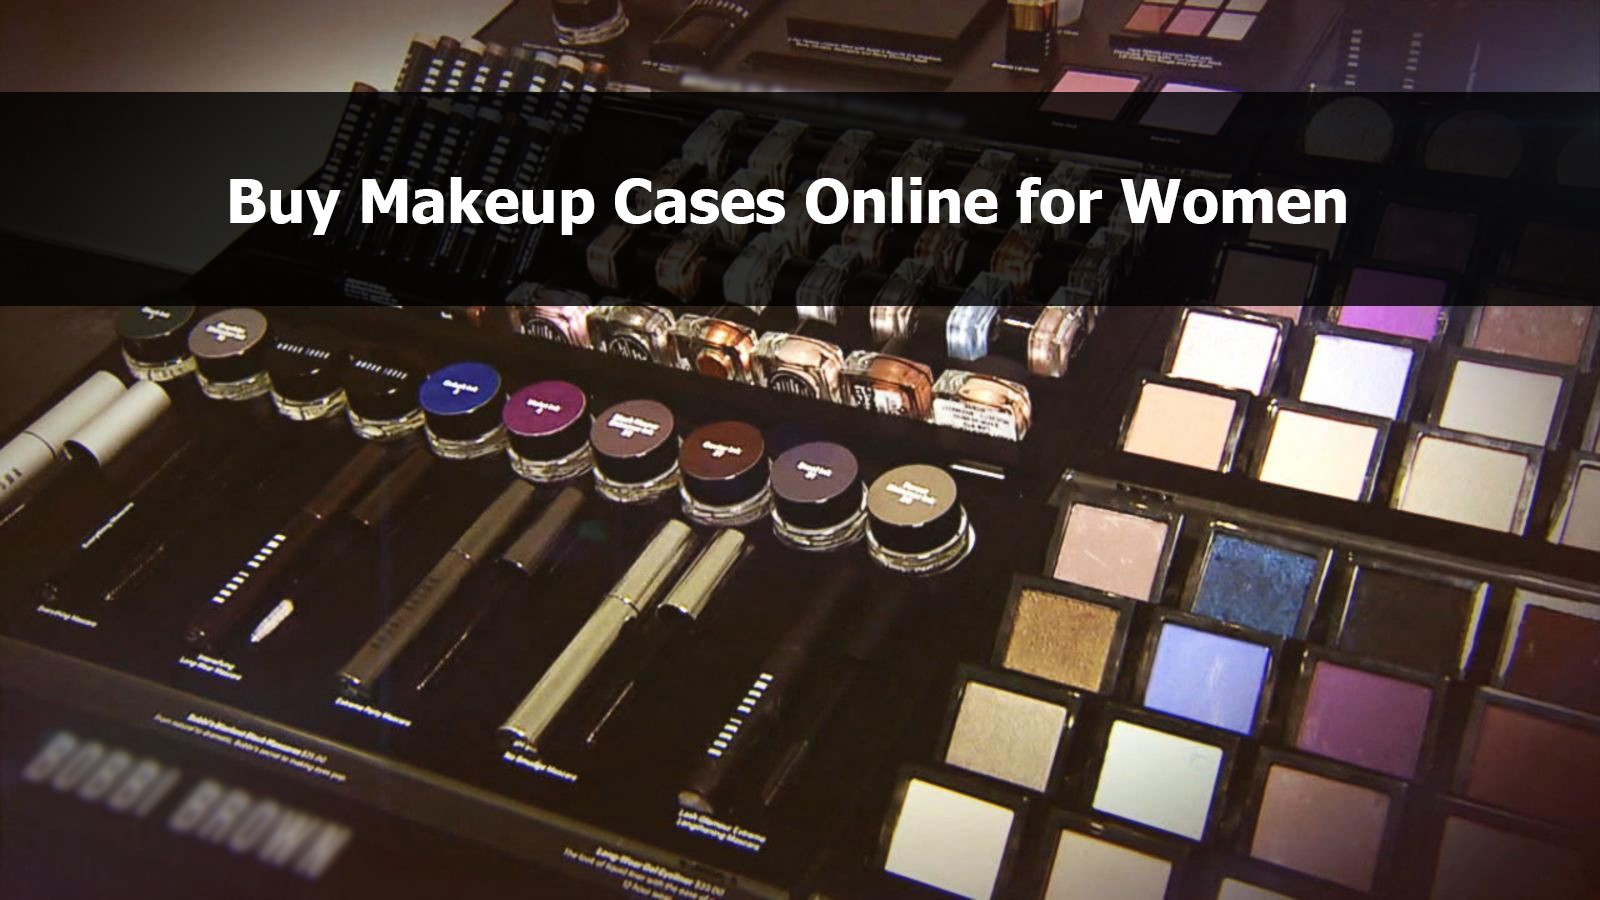 5d5aa46506 To get the best deals and selection of makeup cases, the best option is to buy  makeup cases online. Don't bother if you aren't experienced in purchasing  ...